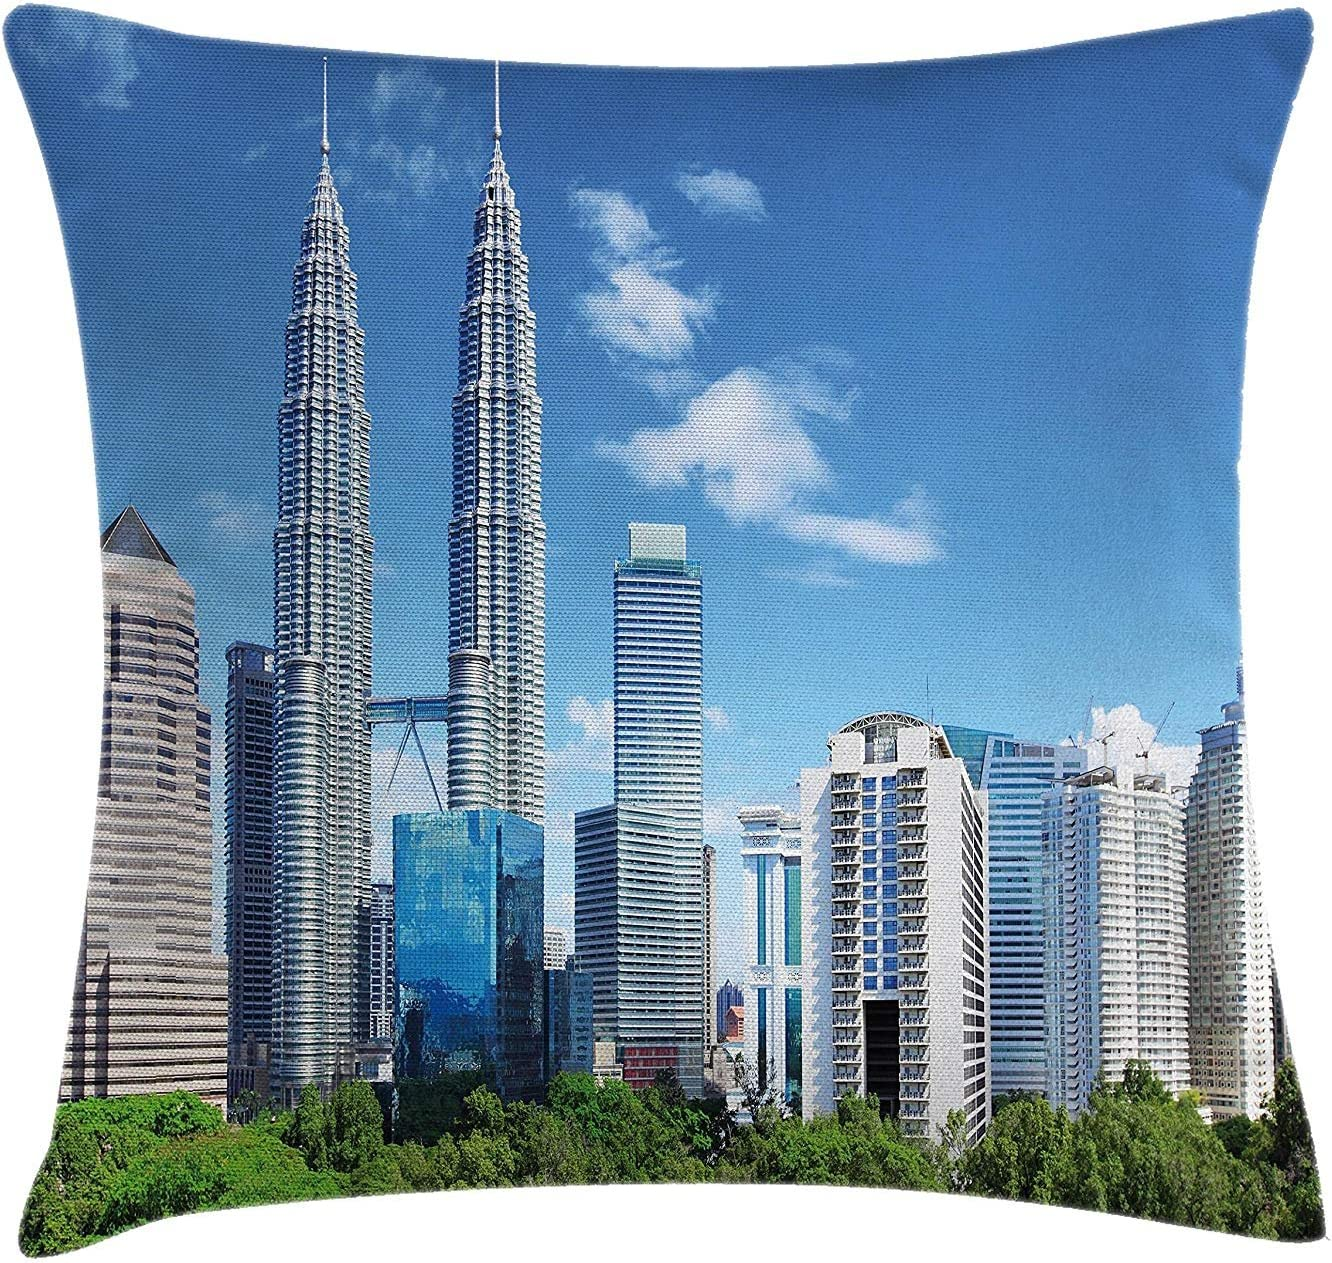 Urban Throw Pillow Cushion Cover Malaysian Kuala Lumpur Skyline Skyscrapers Capital City Corporate Panorama Decorative Square Accent Pillow Case 18 X 18 Inches Sky Blue Light Grey Amazon Co Uk Kitchen Home